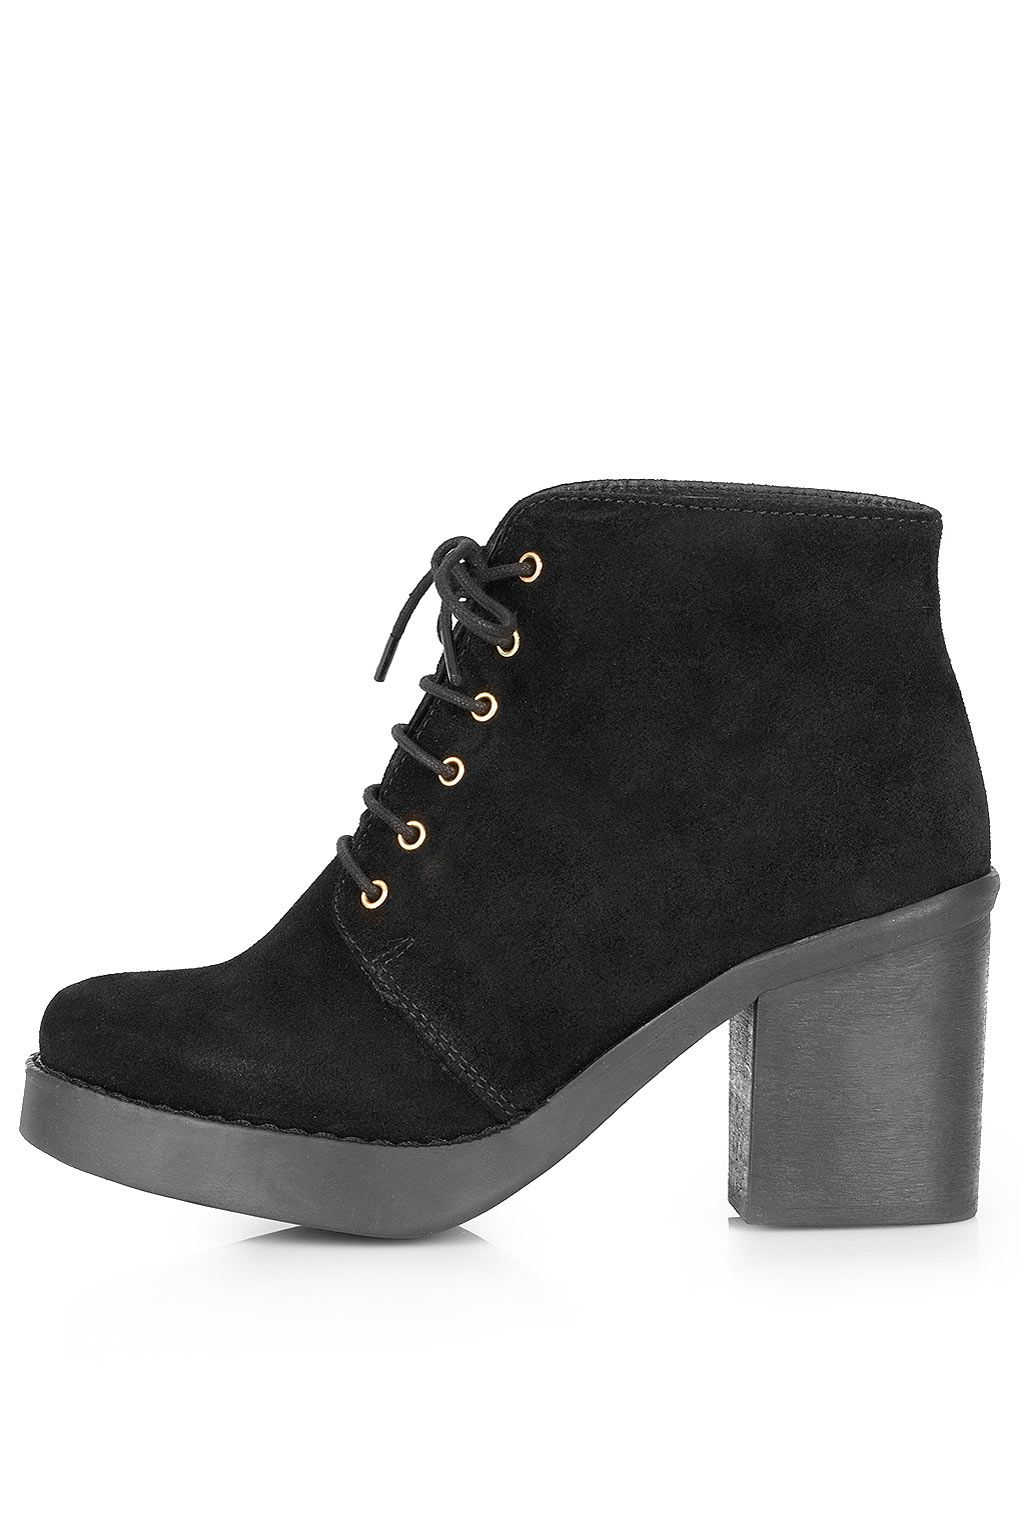 3d8e7f17b8f ATHENA Lace-up Ankle Boots | £70.00 | Topshop | Fall/Winter | Shoes ...